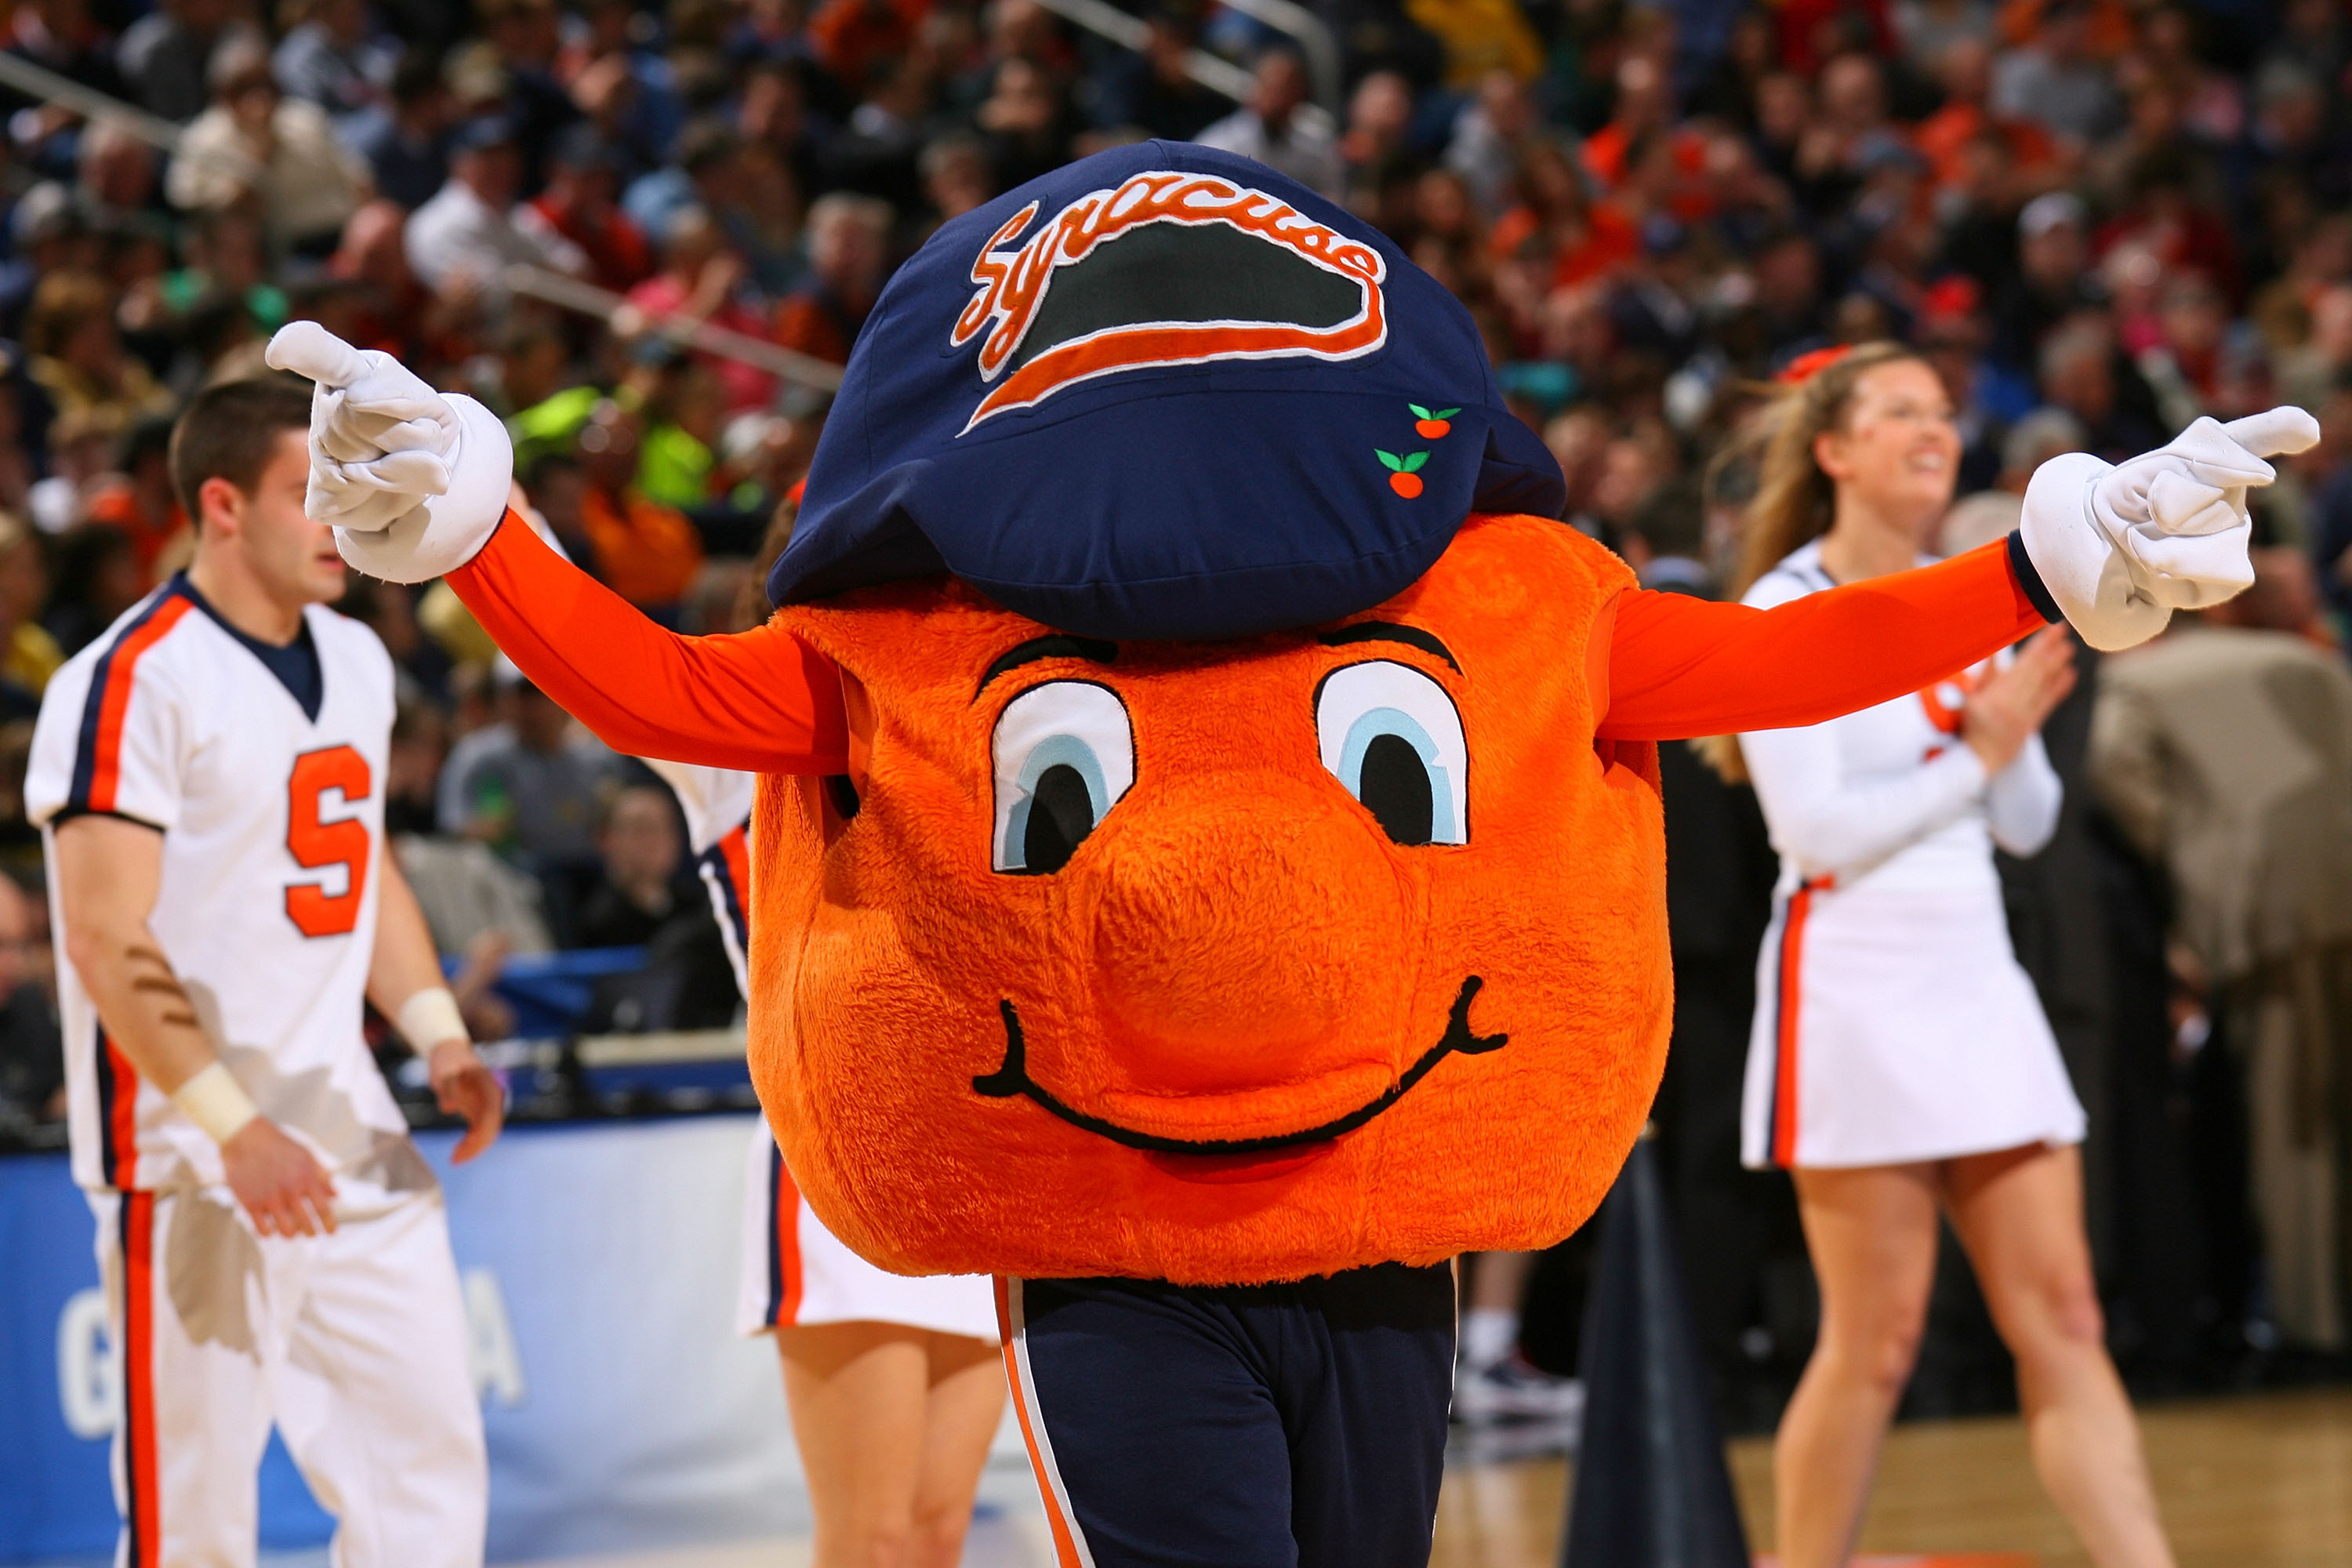 BUFFALO, NY - MARCH 21:  The Syracuse Orange mascot performs during the second round of the 2010 NCAA men's basketball tournament at HSBC Arena at HSBC Arena on March 21, 2010 in Buffalo, New York.  (Photo by Rick Stewart/Getty Images)